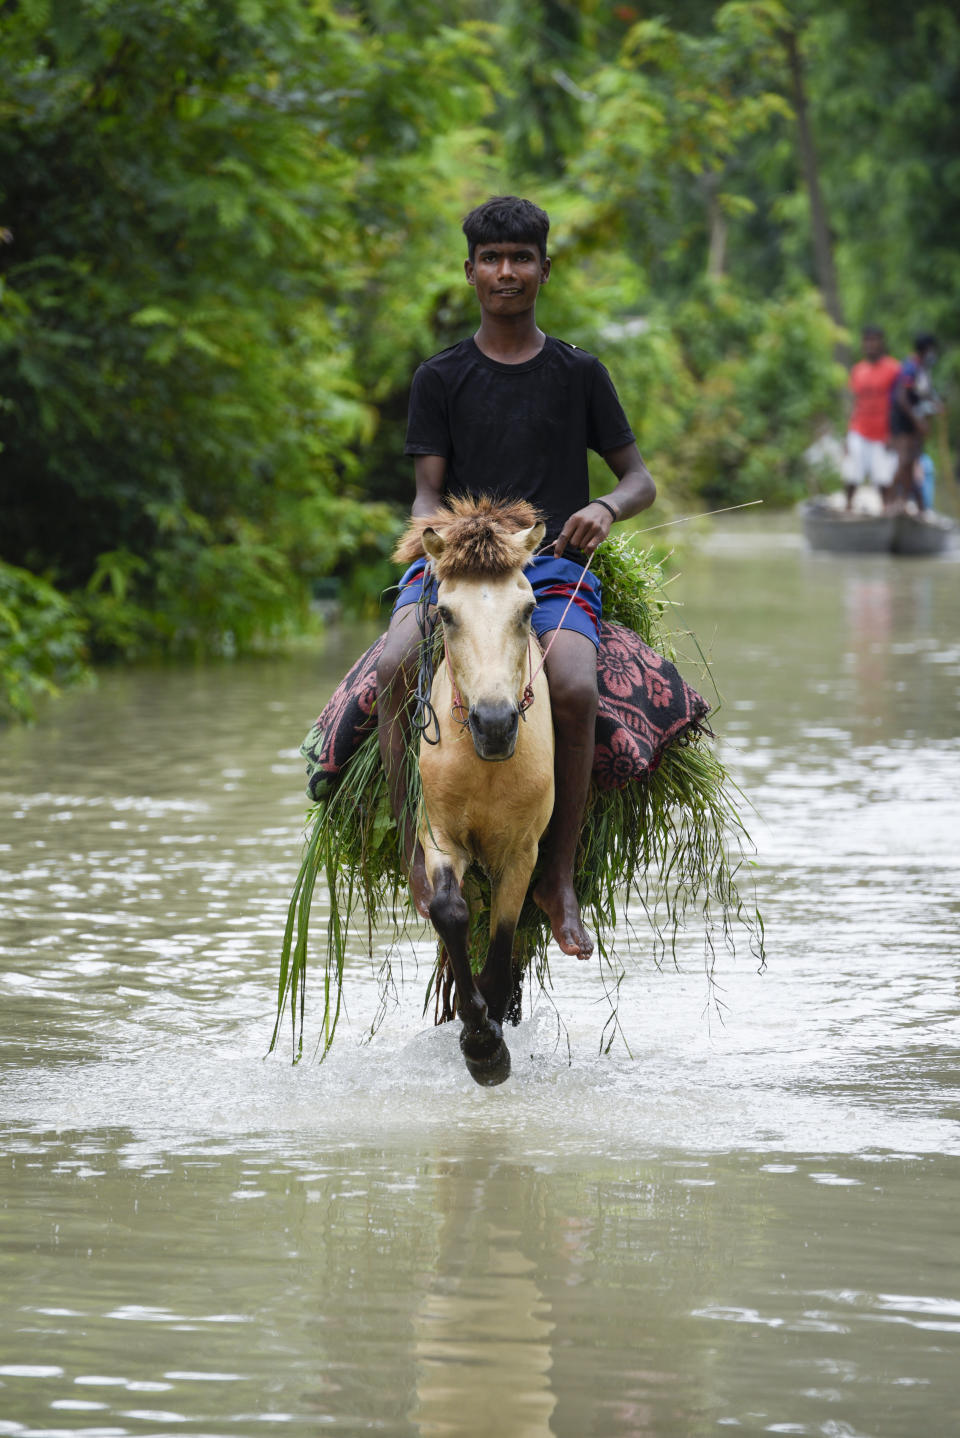 A boy rides a donkey as he id croosing a flooded street in a village in Kamrup district of Assam, in India on 14 July 2020. (Photo by David Talukdar/NurPhoto via Getty Images)